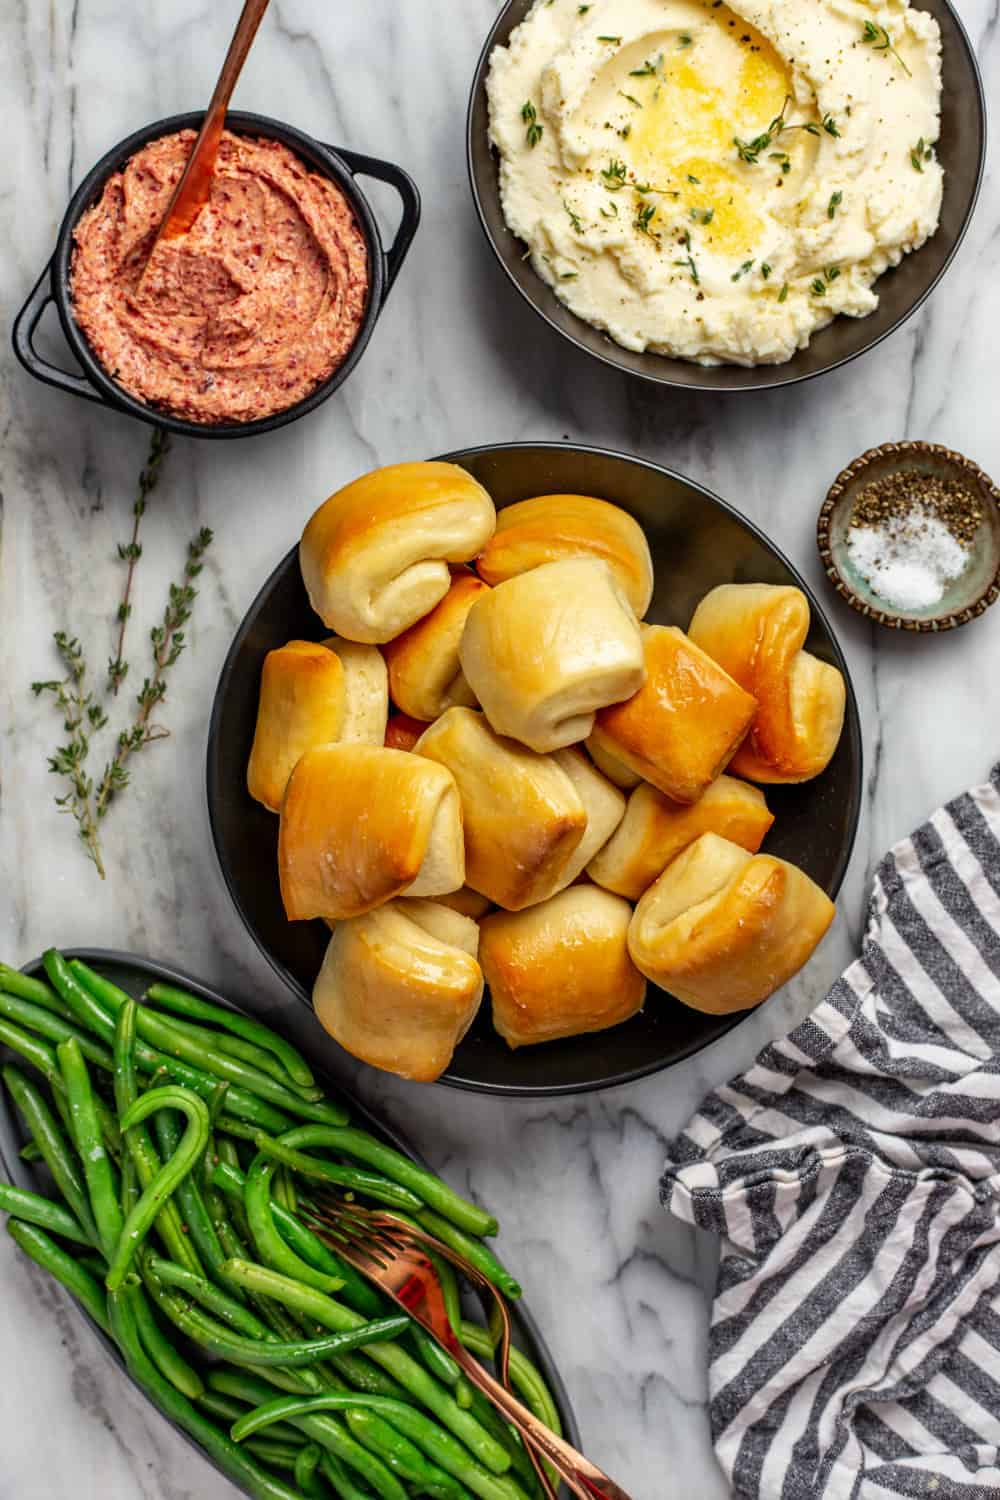 Thanksgiving dinner sides on a marble surface: a bowl of green beans, a bowl of mashed potatoes, and a small bowl of cranberry butter surrounding parker house rolls